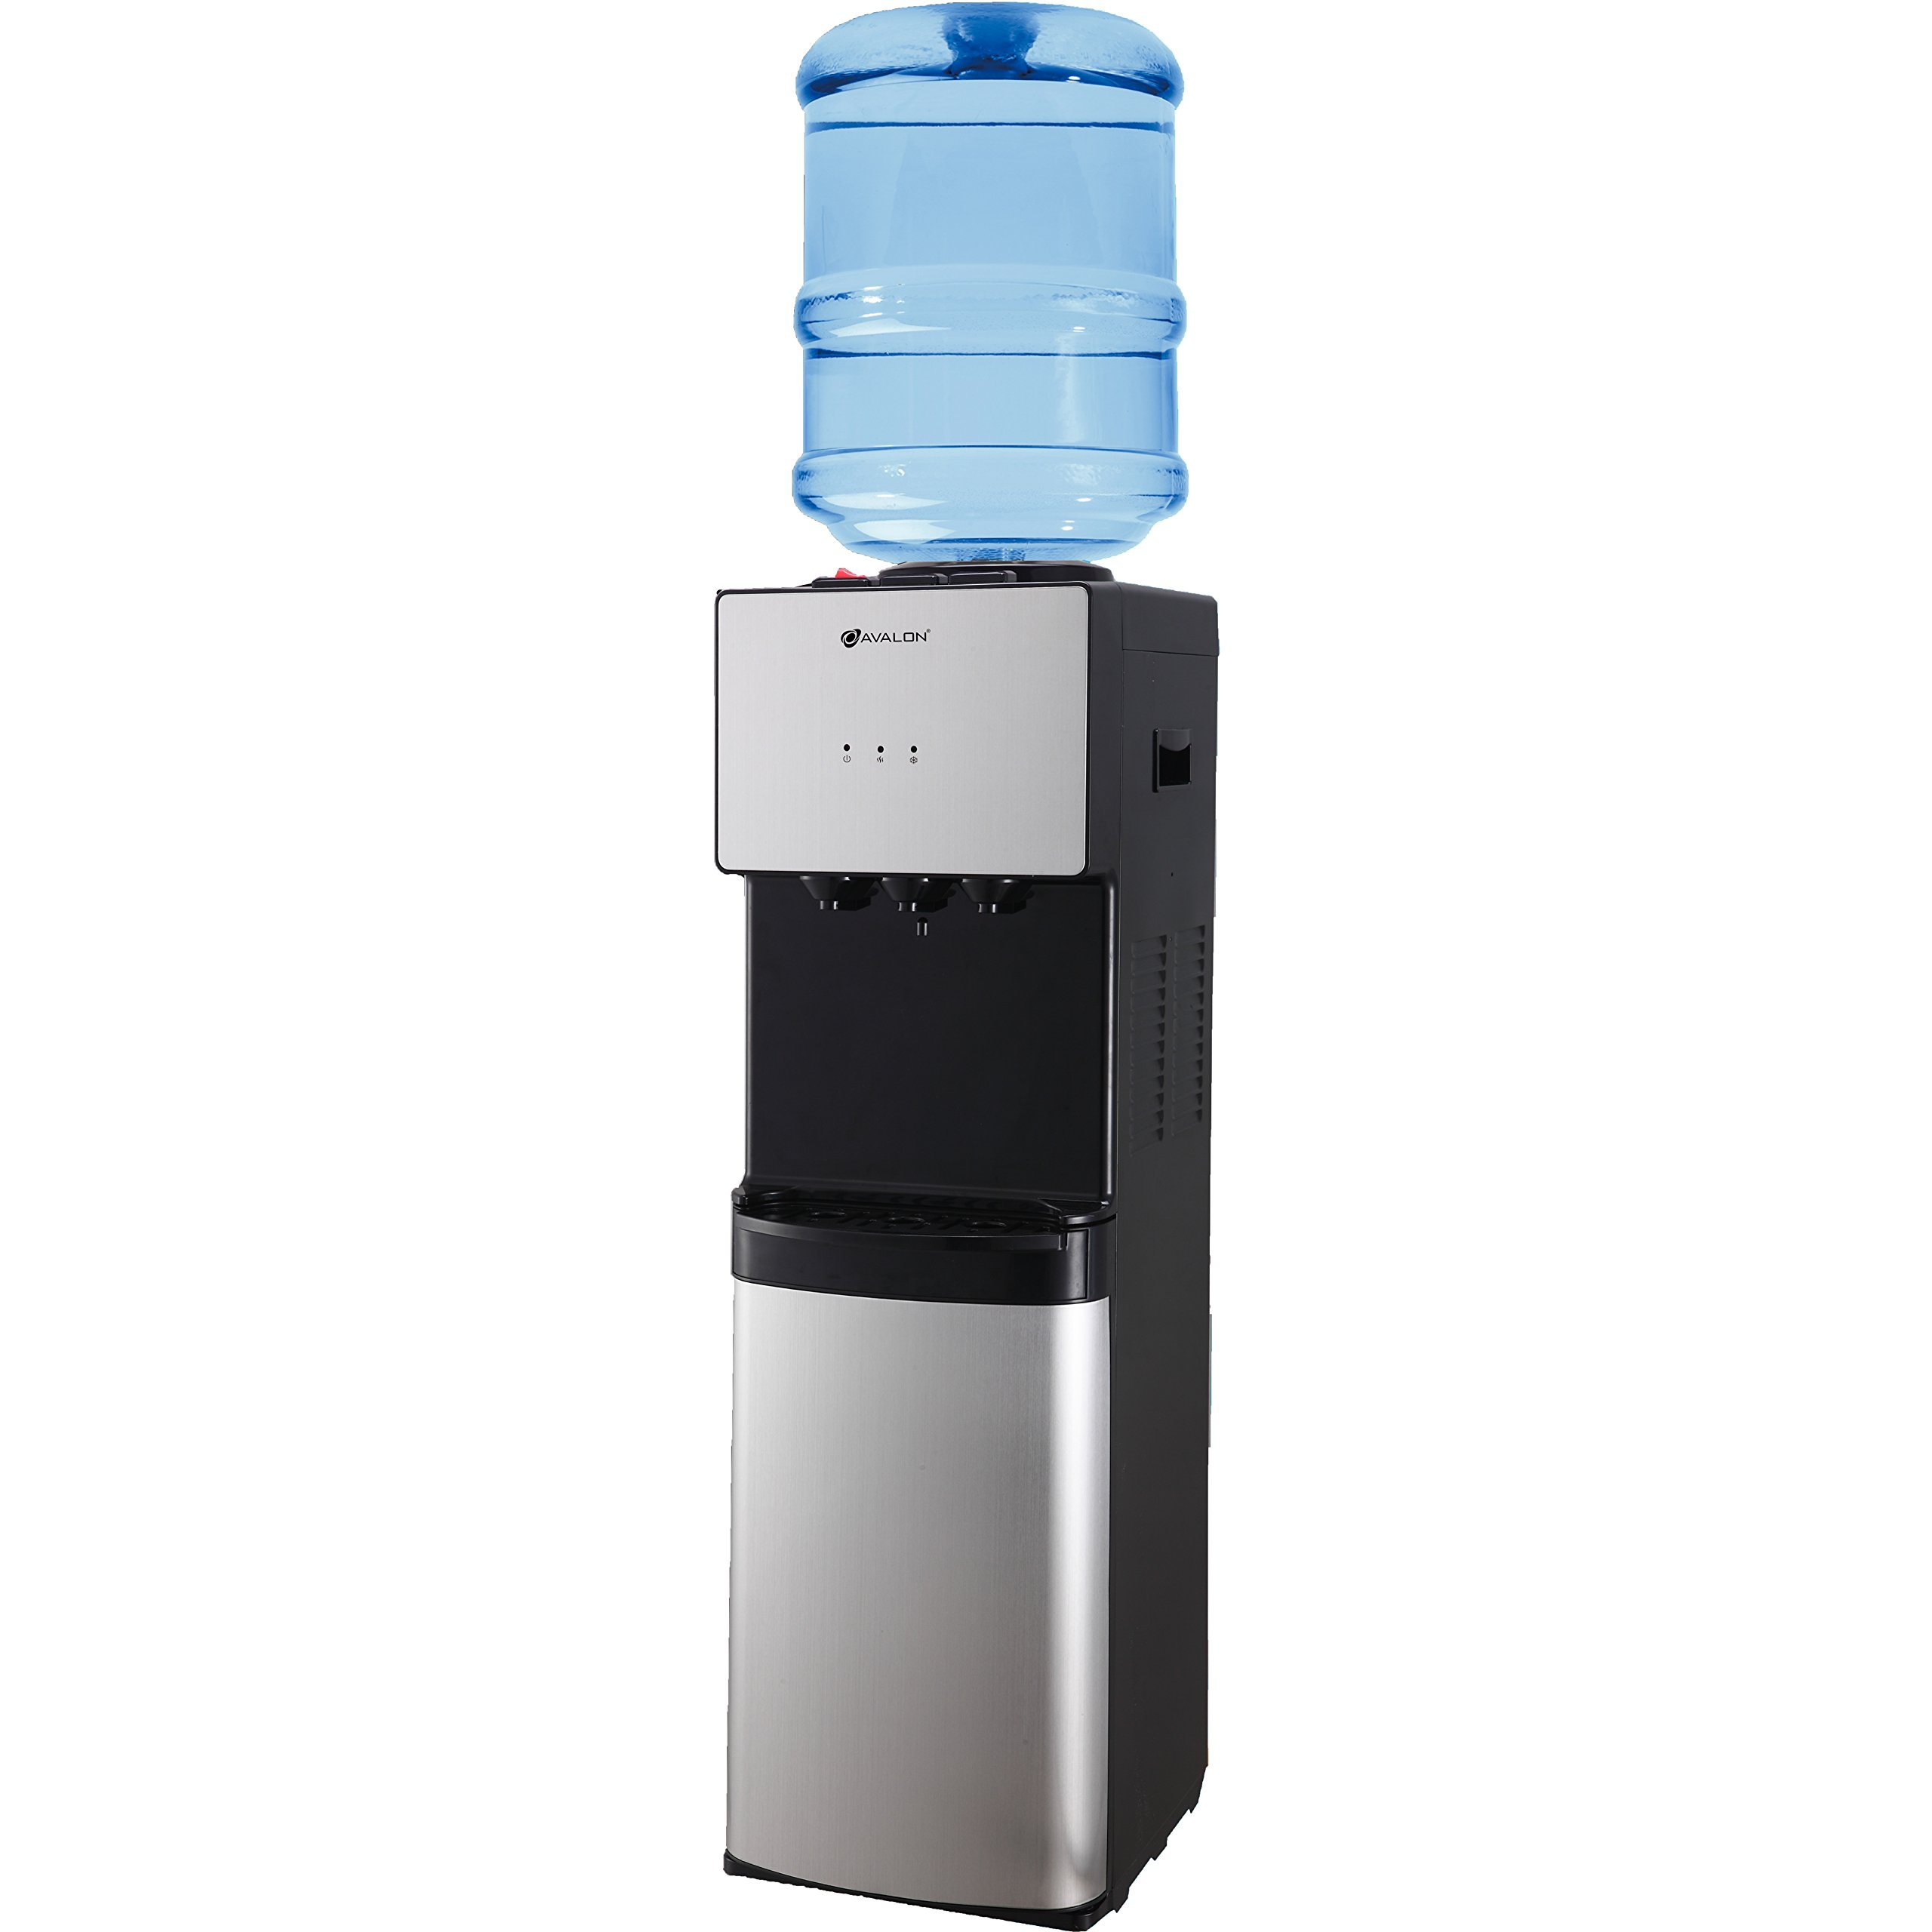 Avalon Top Loading Water Cooler Dispenser - 3 Temperature, Stainless Steel by Avalon (Image #1)